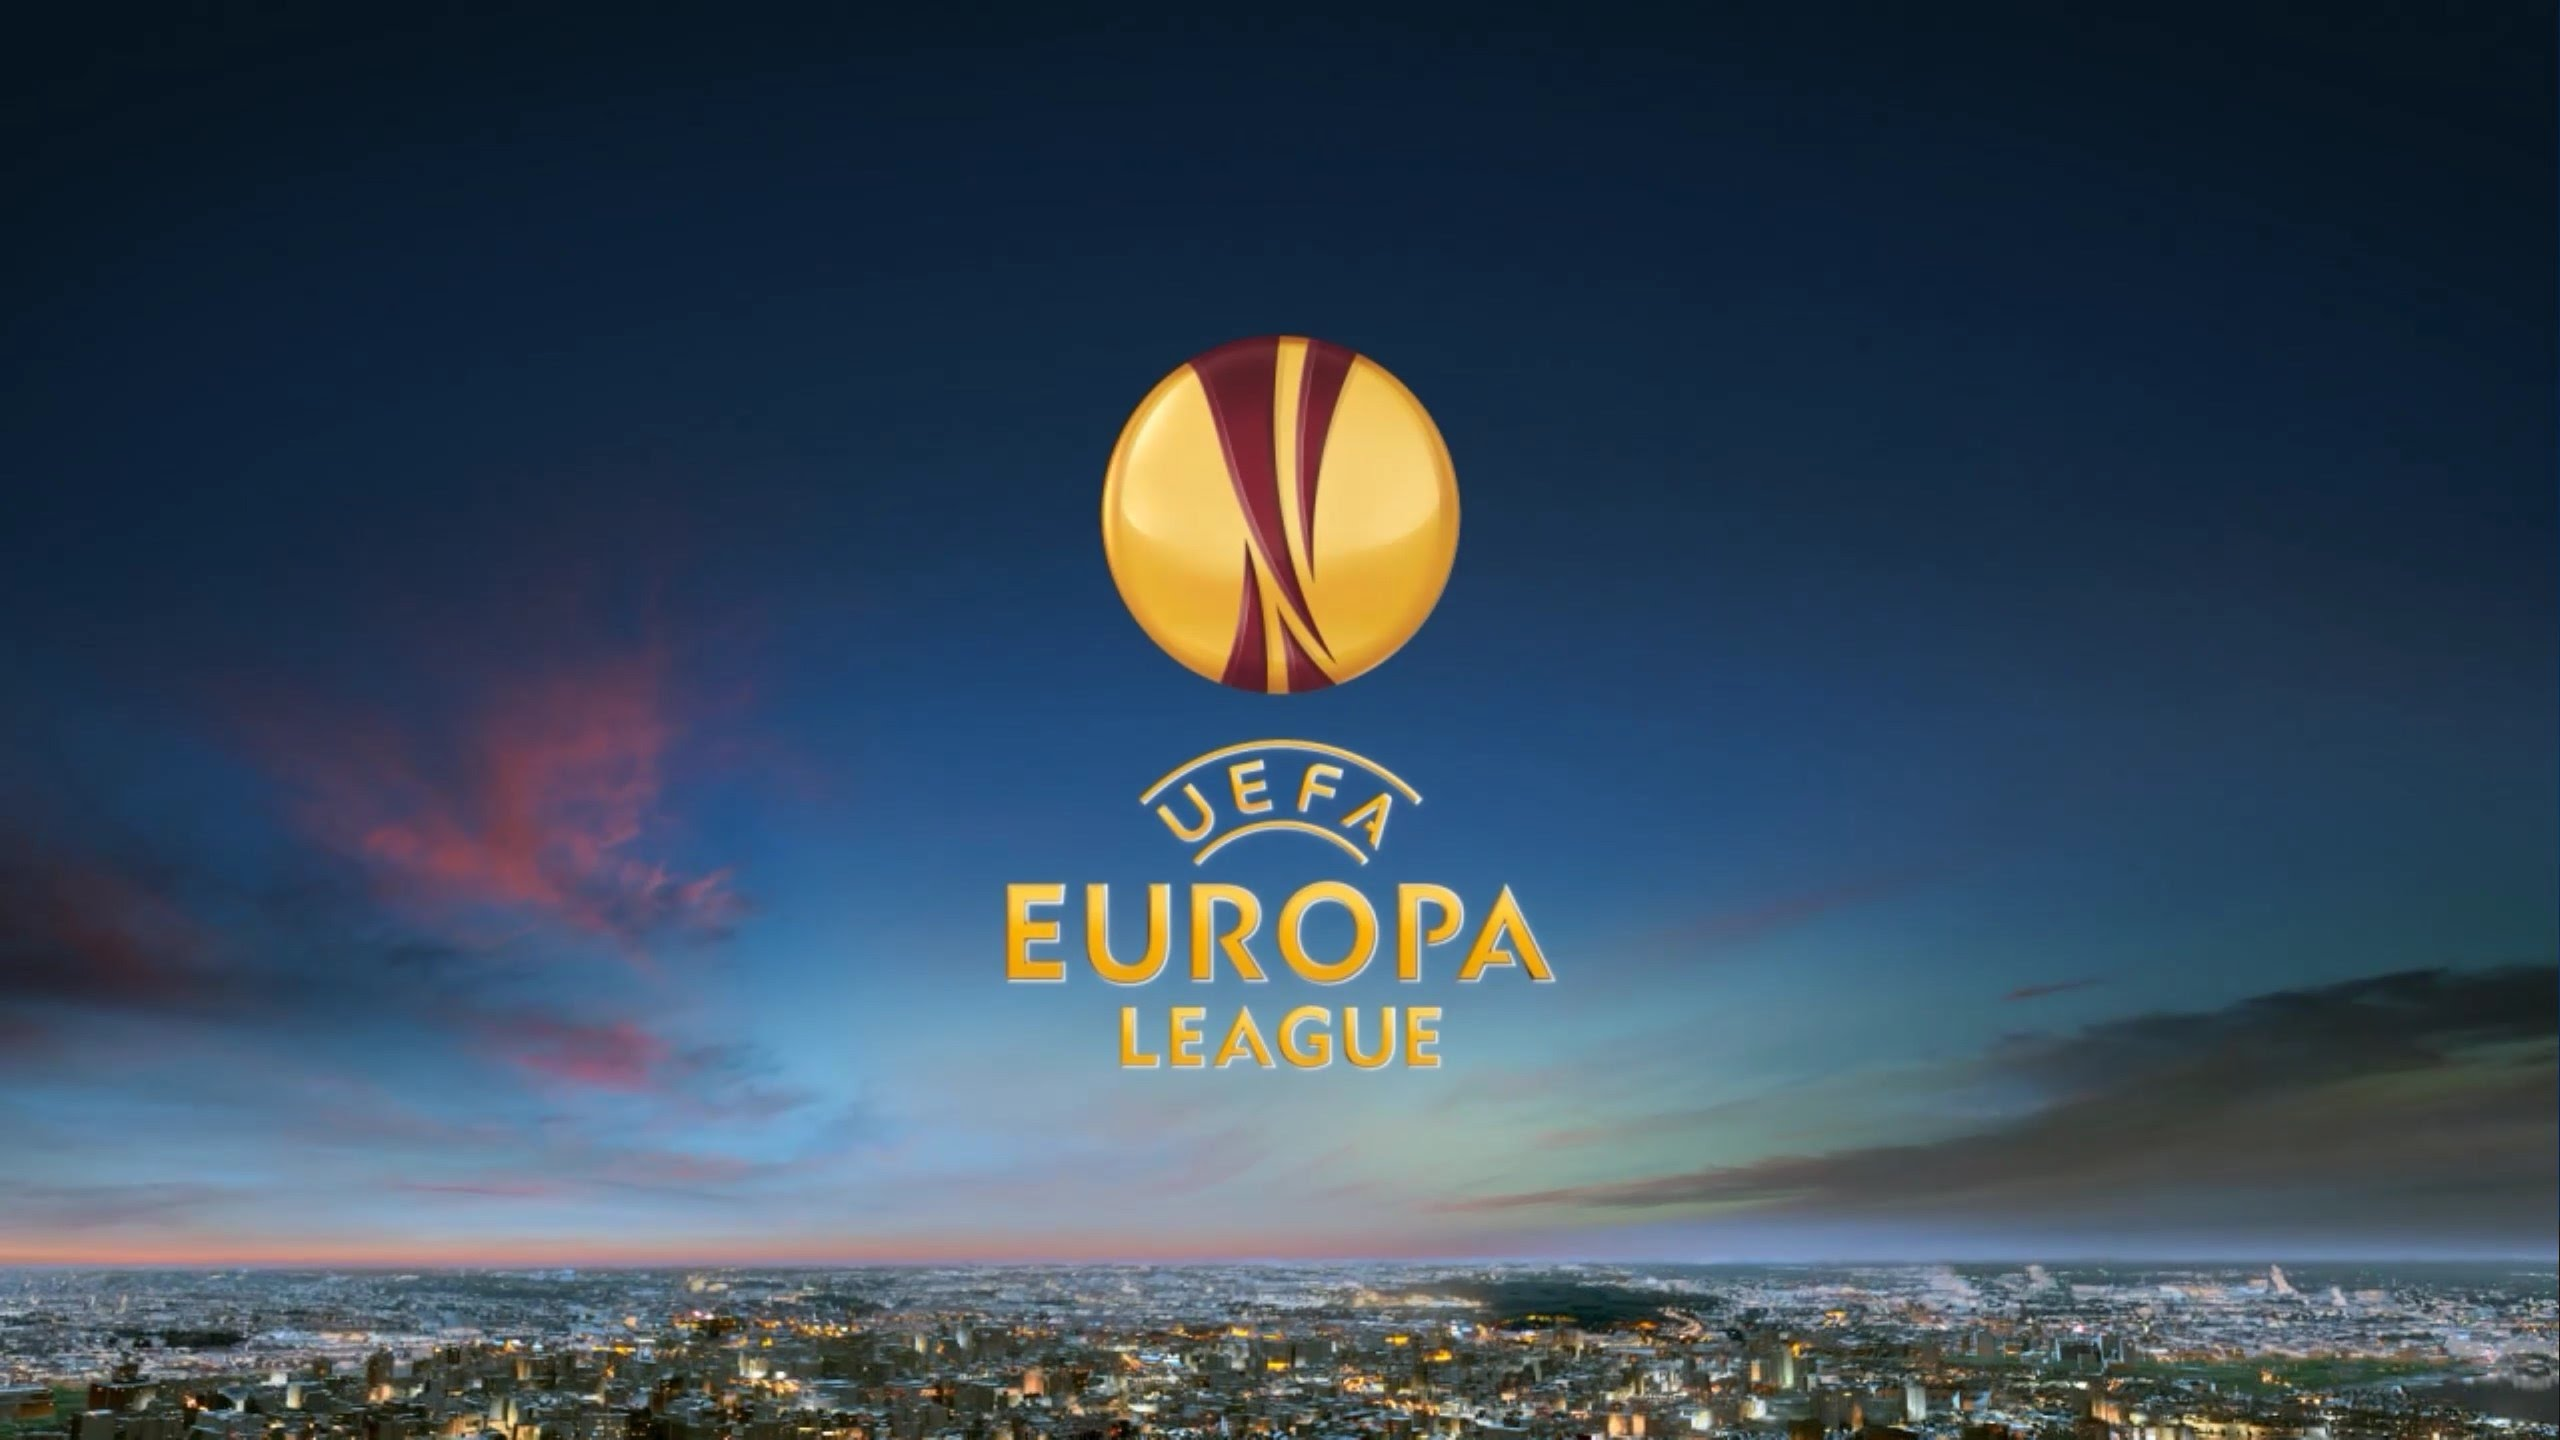 europa league header